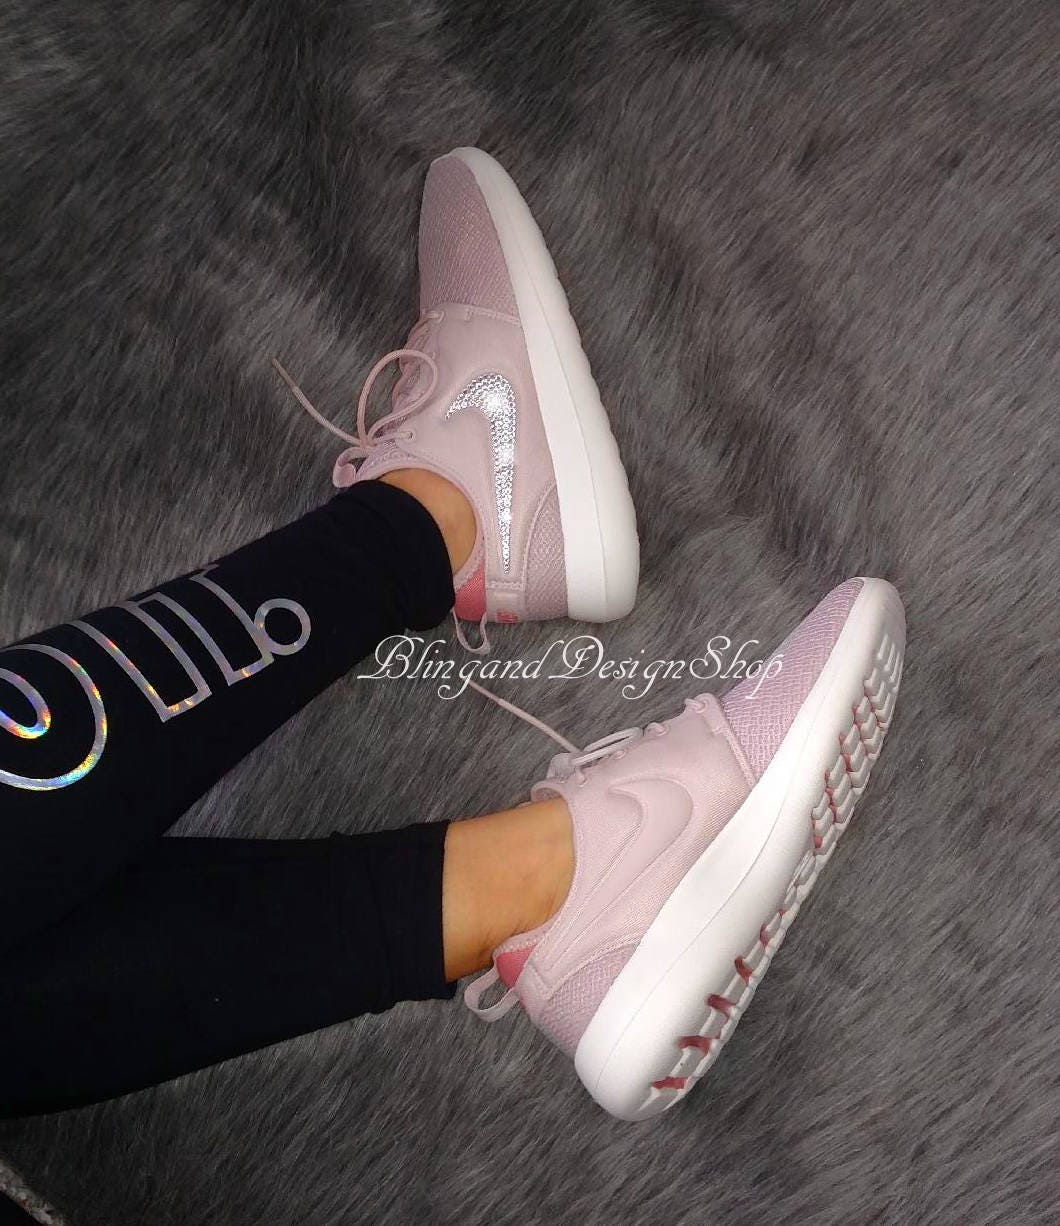 3287f49c1d55 Swarovski Bling Nike Roshe Two Women s Nike Shoes Custom with Swarovski  Crystal Rhinestones